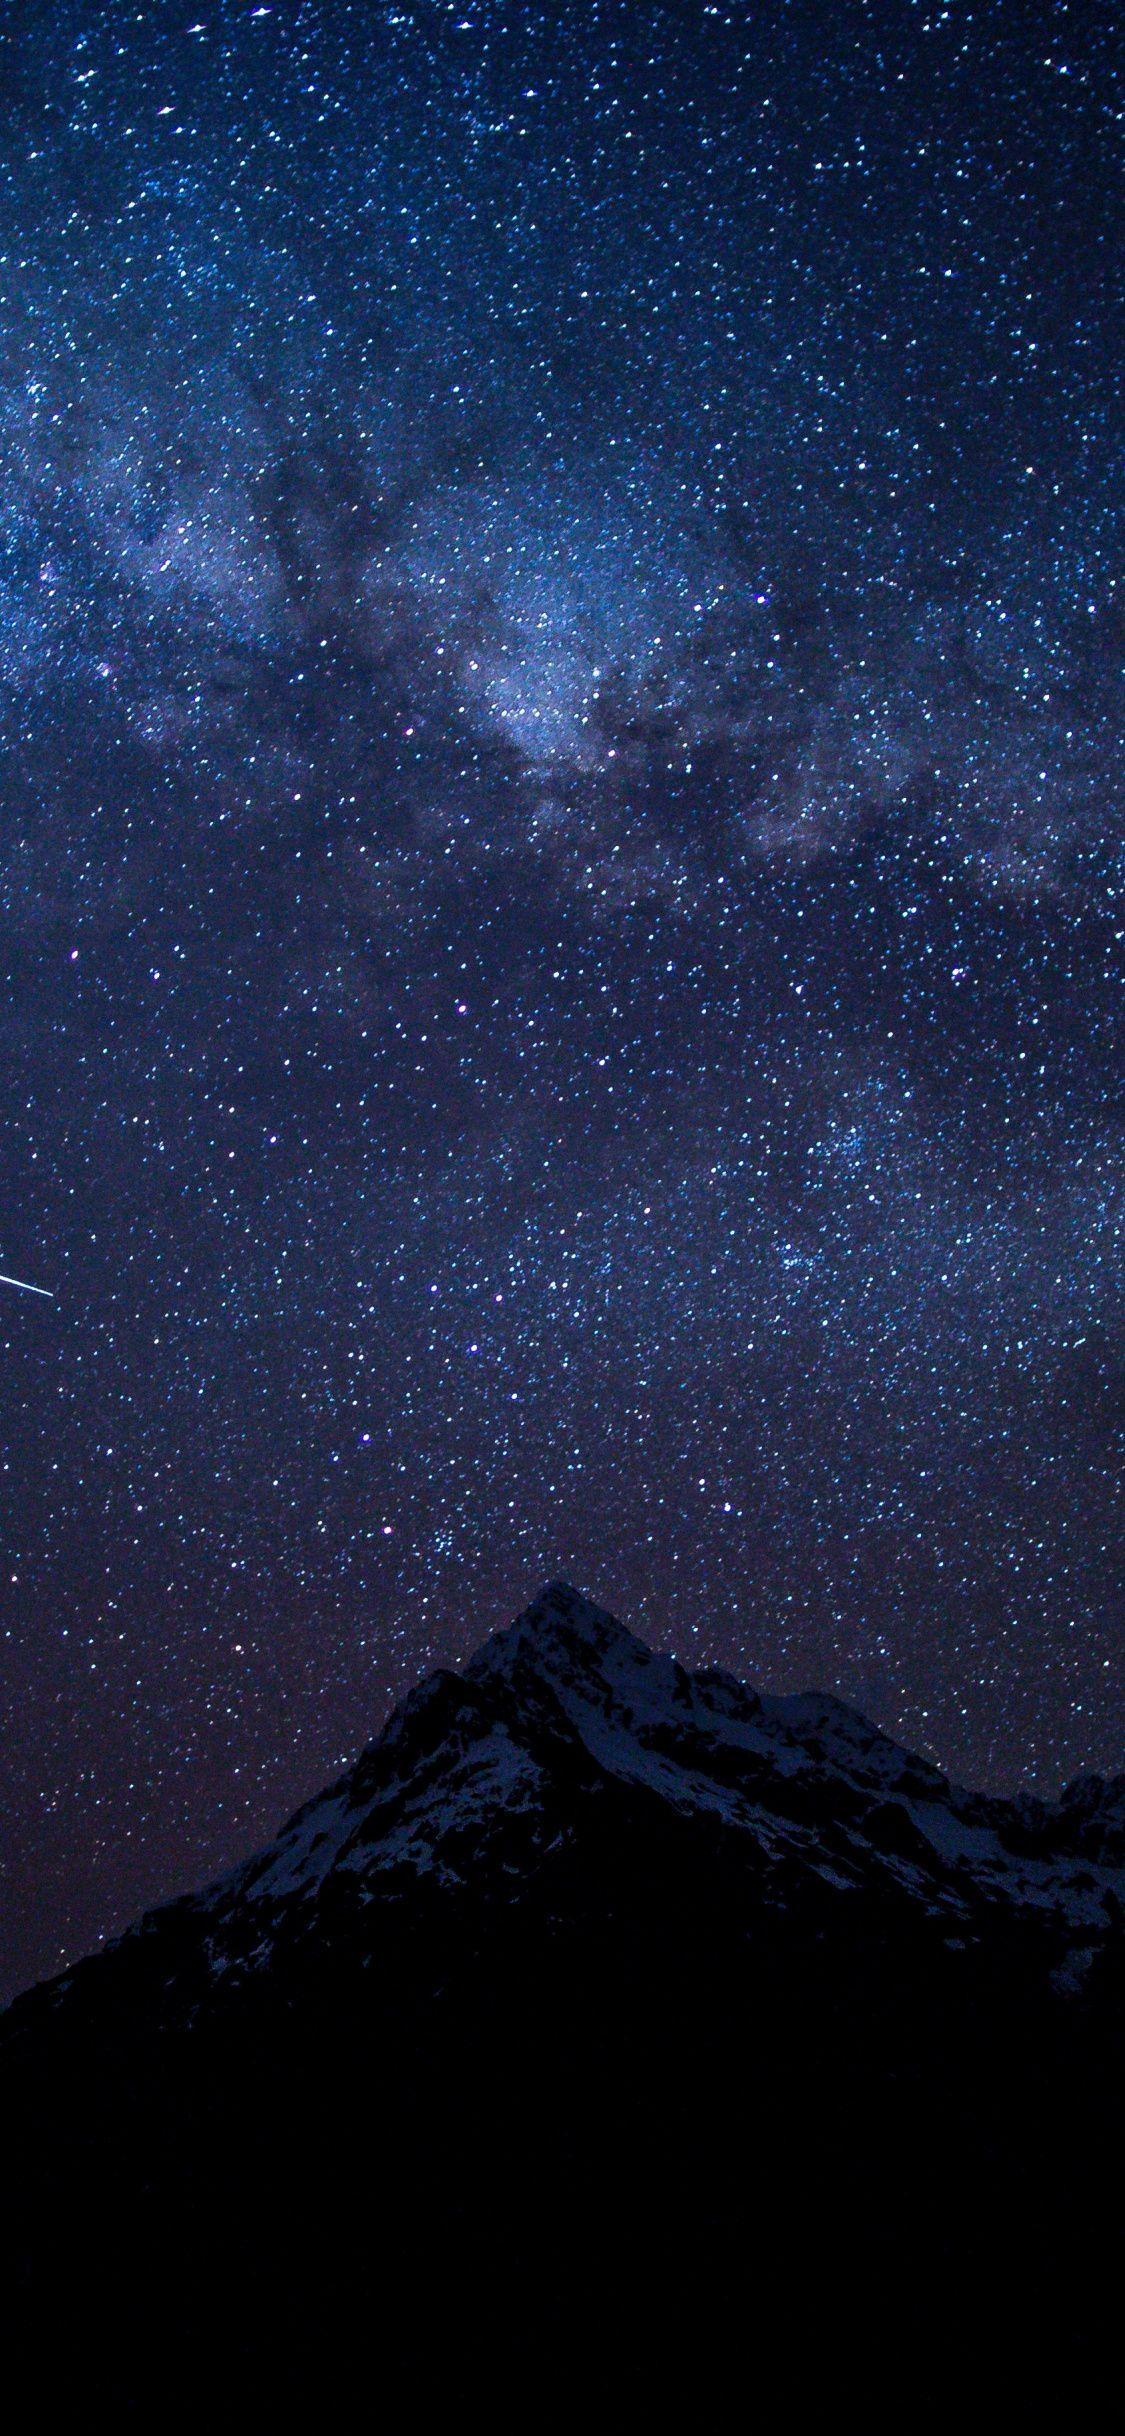 Night Sky Iphone Wallpapers On Wallpaperdog